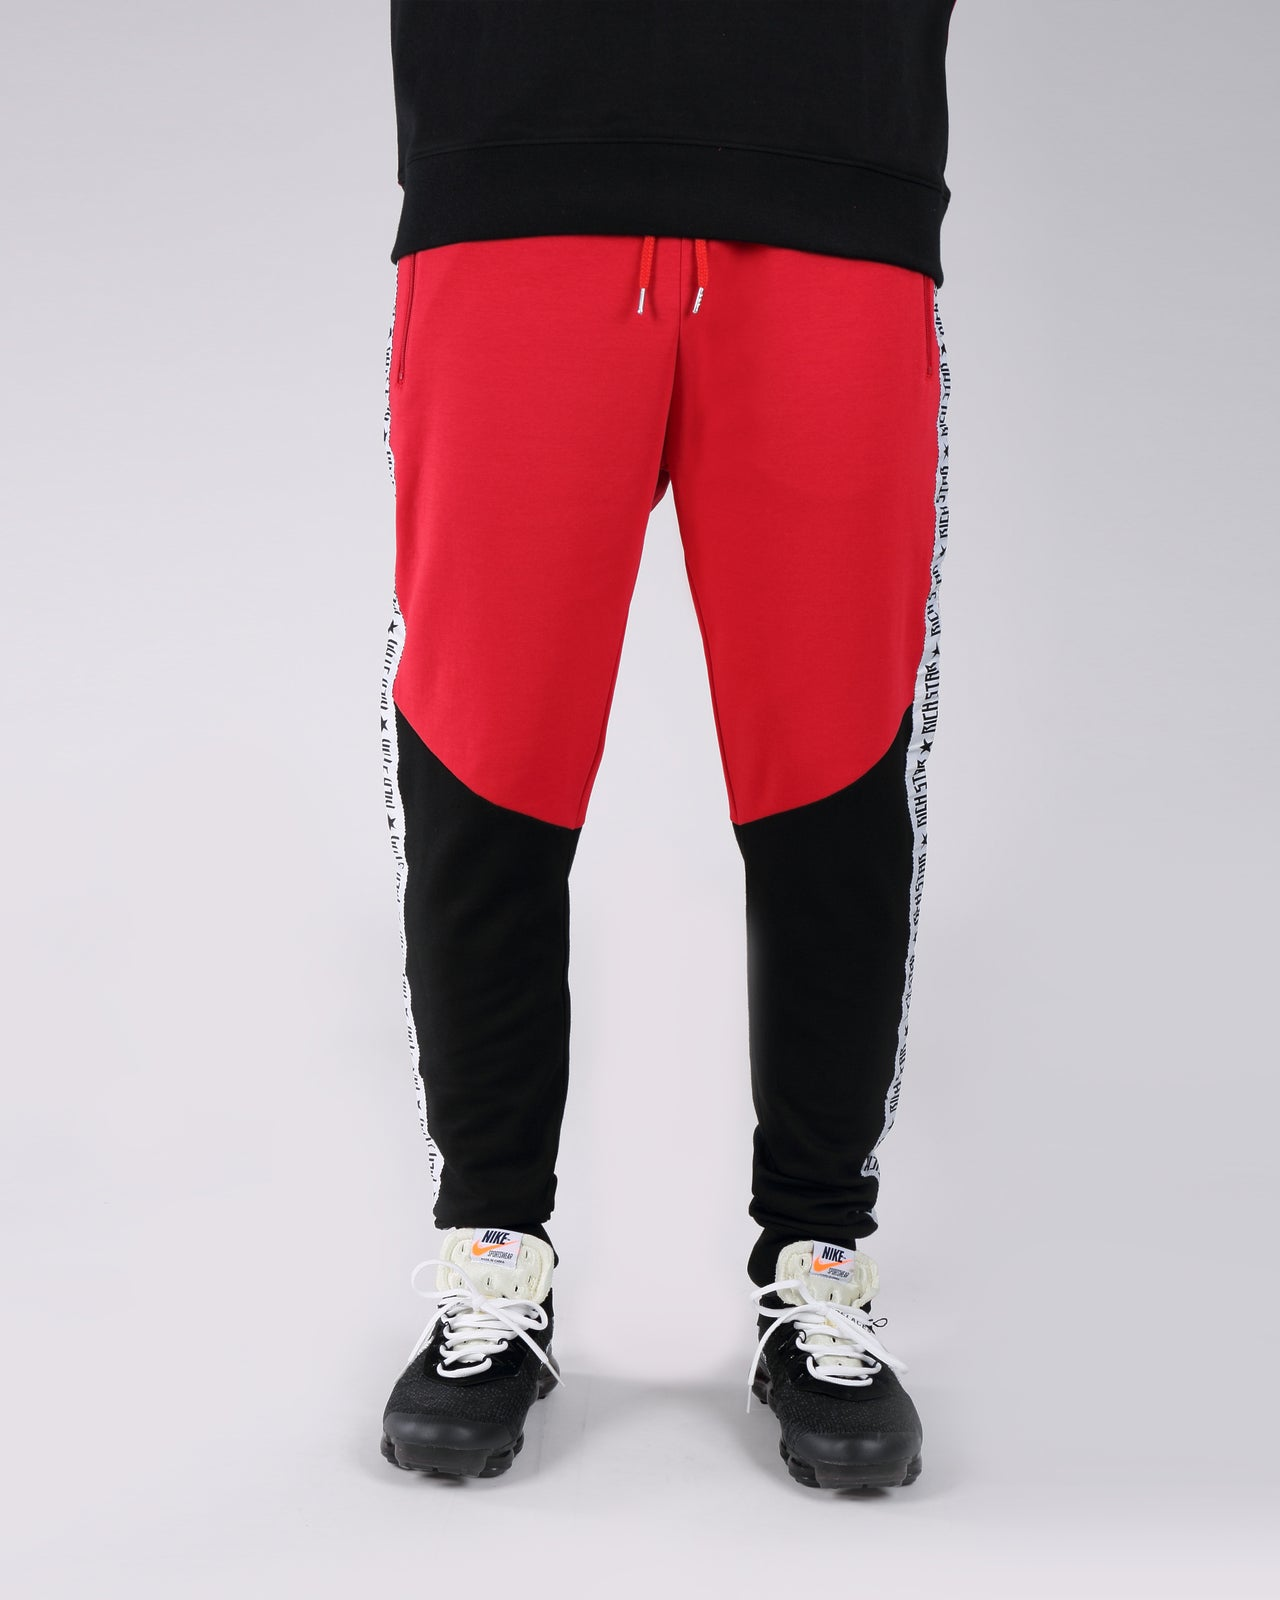 Taping Color Block Jogger Pants - Color: Red | Red